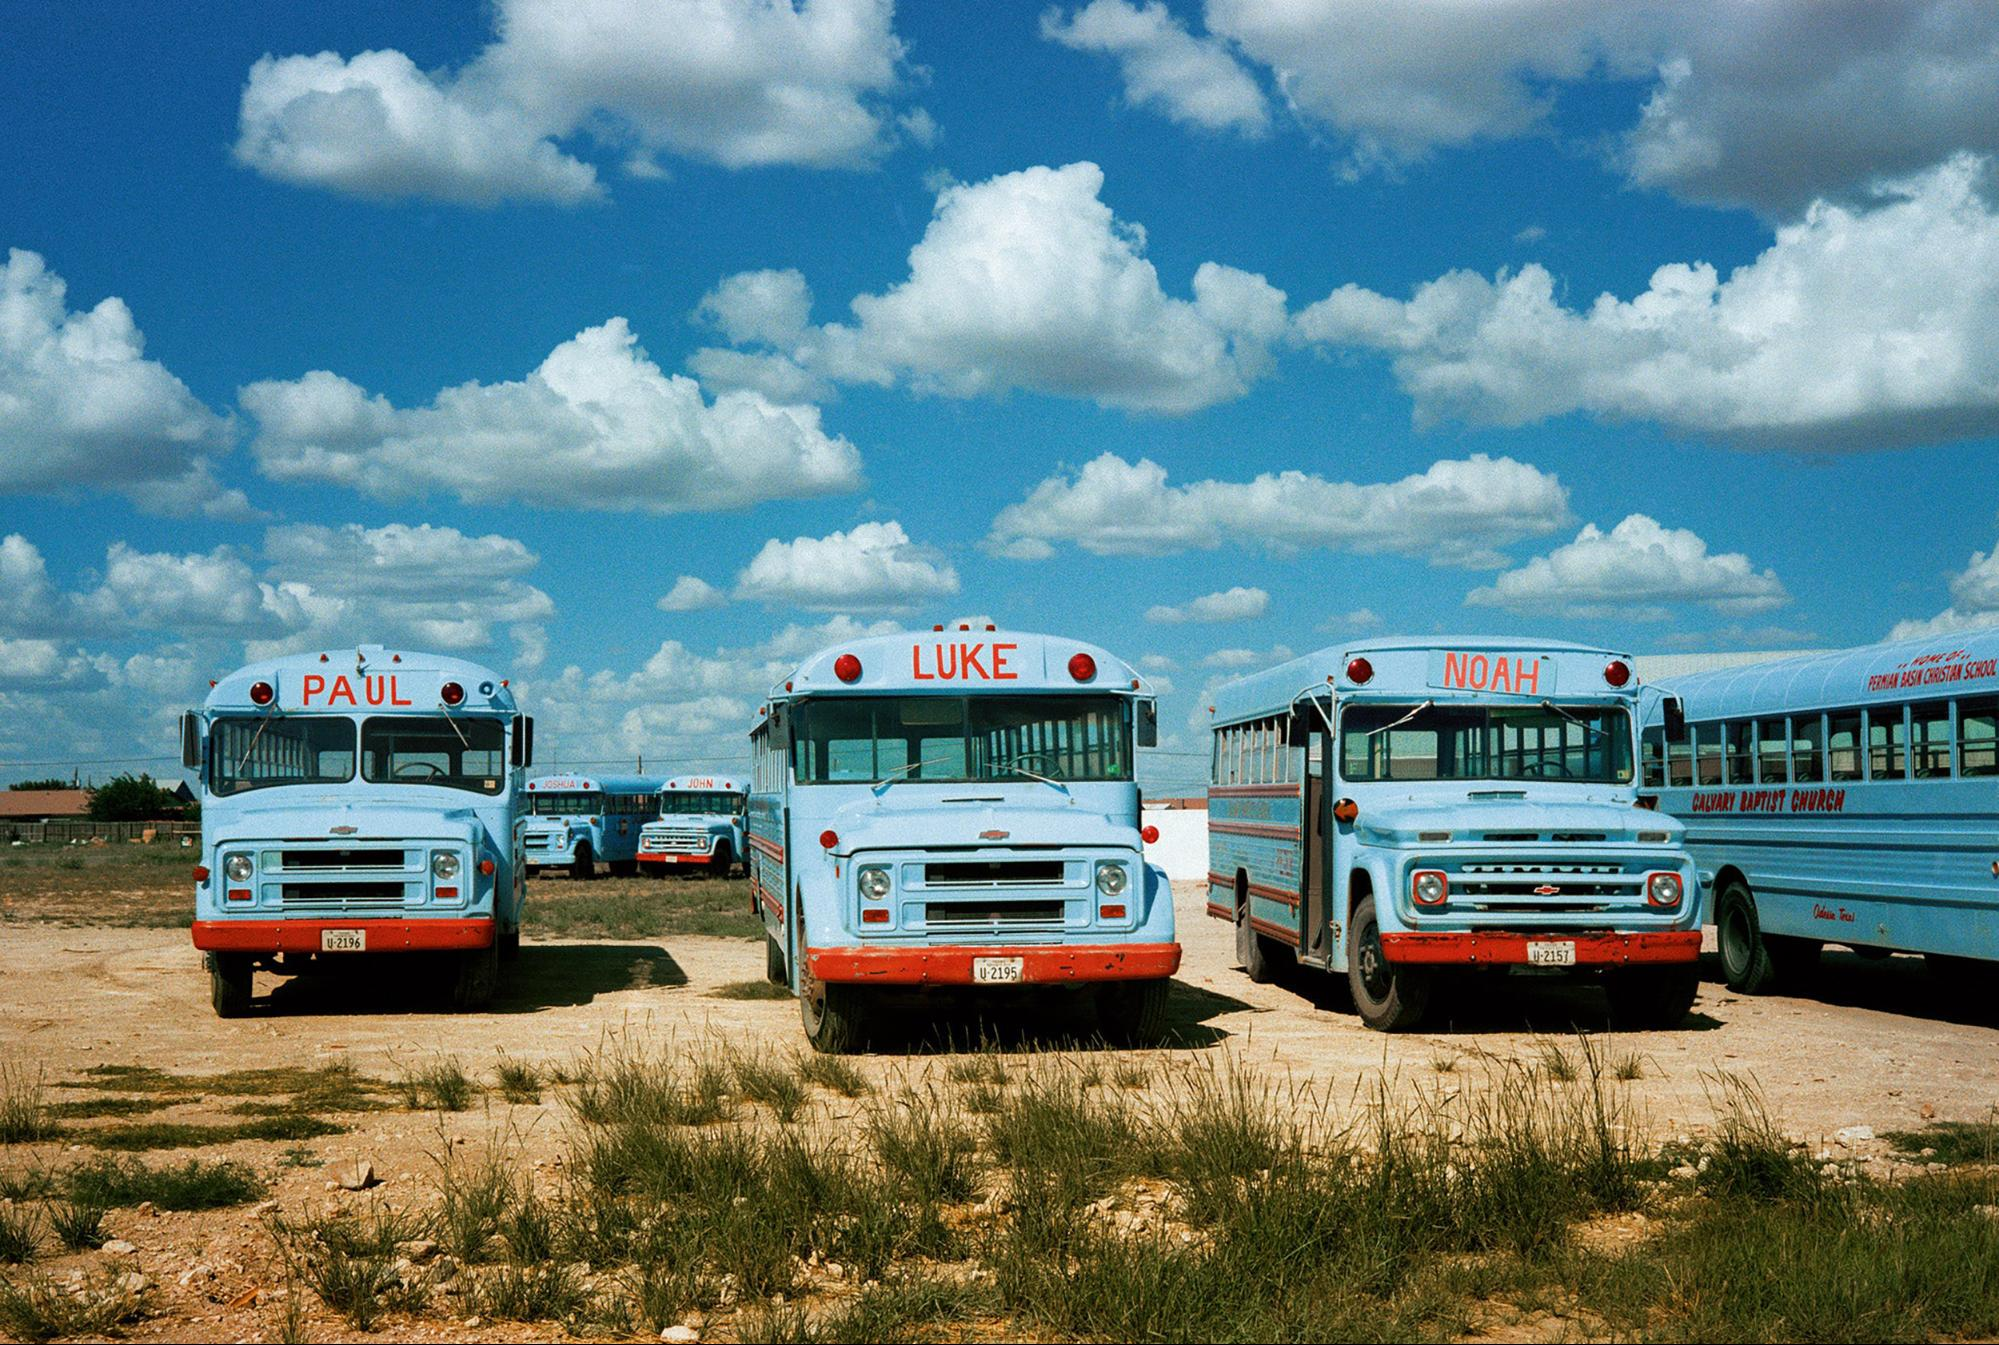 'Joshua and John (behind)', Odessa, Texas, 1983 photograph by Wim Wenders